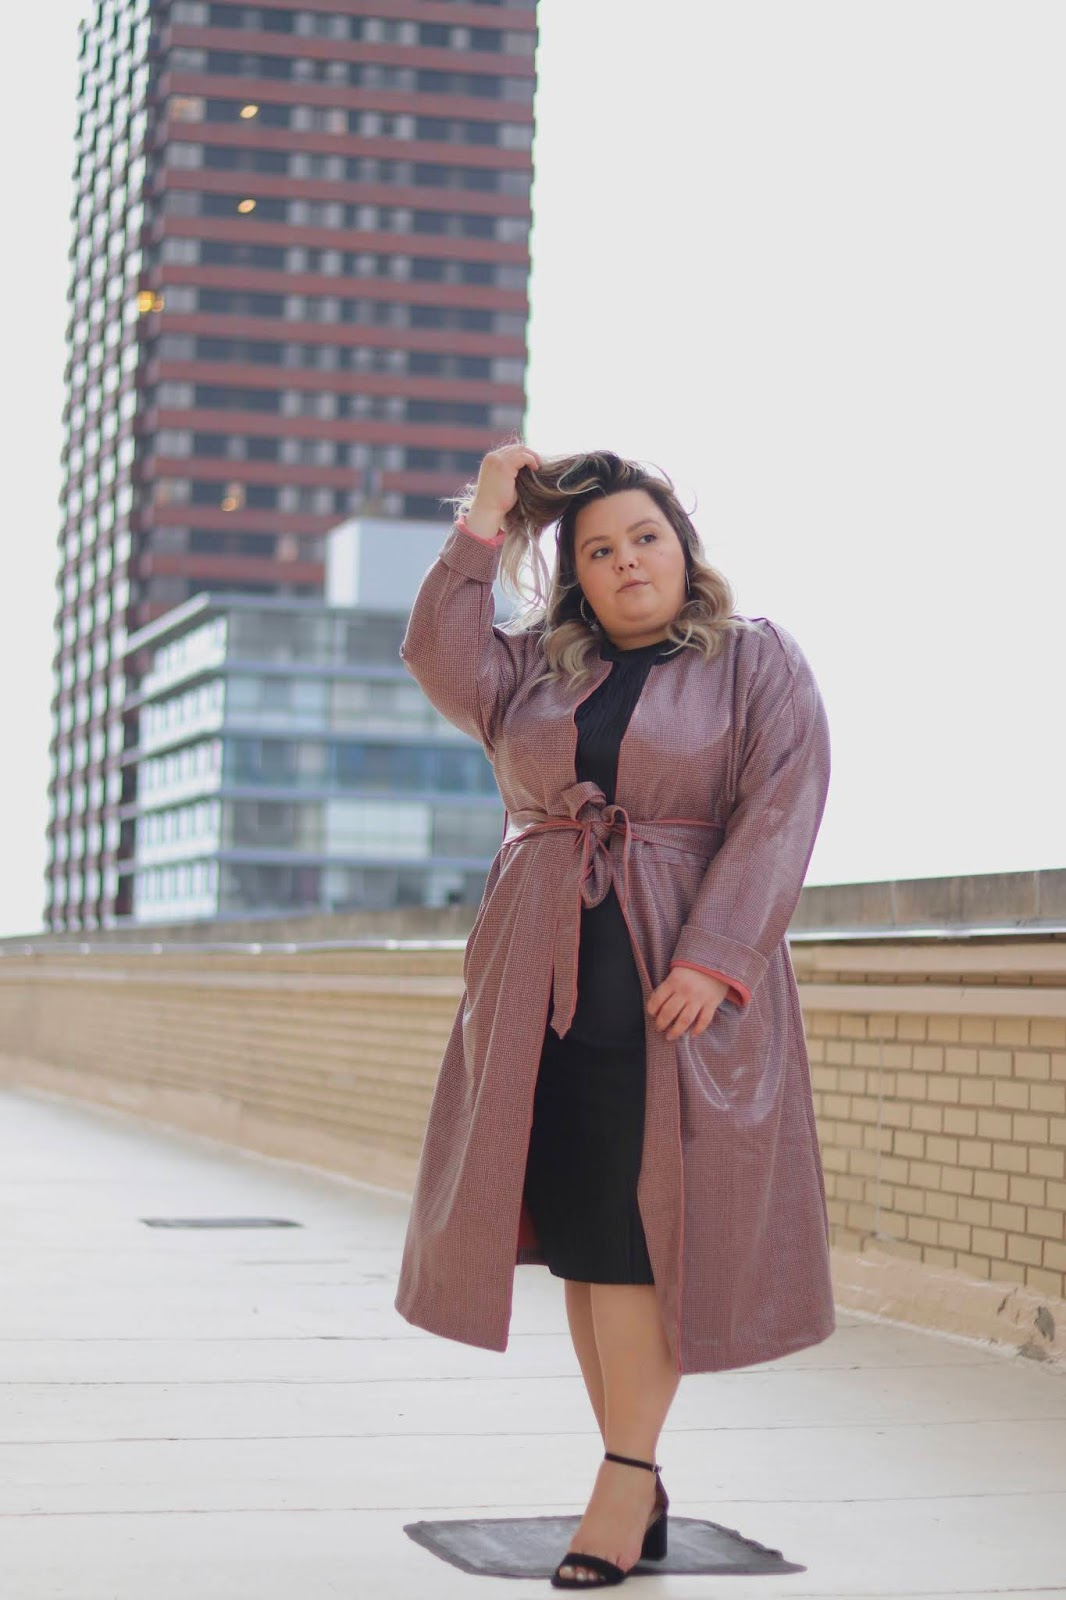 Chicago Plus Size Petite Fashion Blogger, influencer, YouTuber, and model Natalie Craig, of Natalie in the City, reviews Fashion Nova Curve's Coated Raincoat.